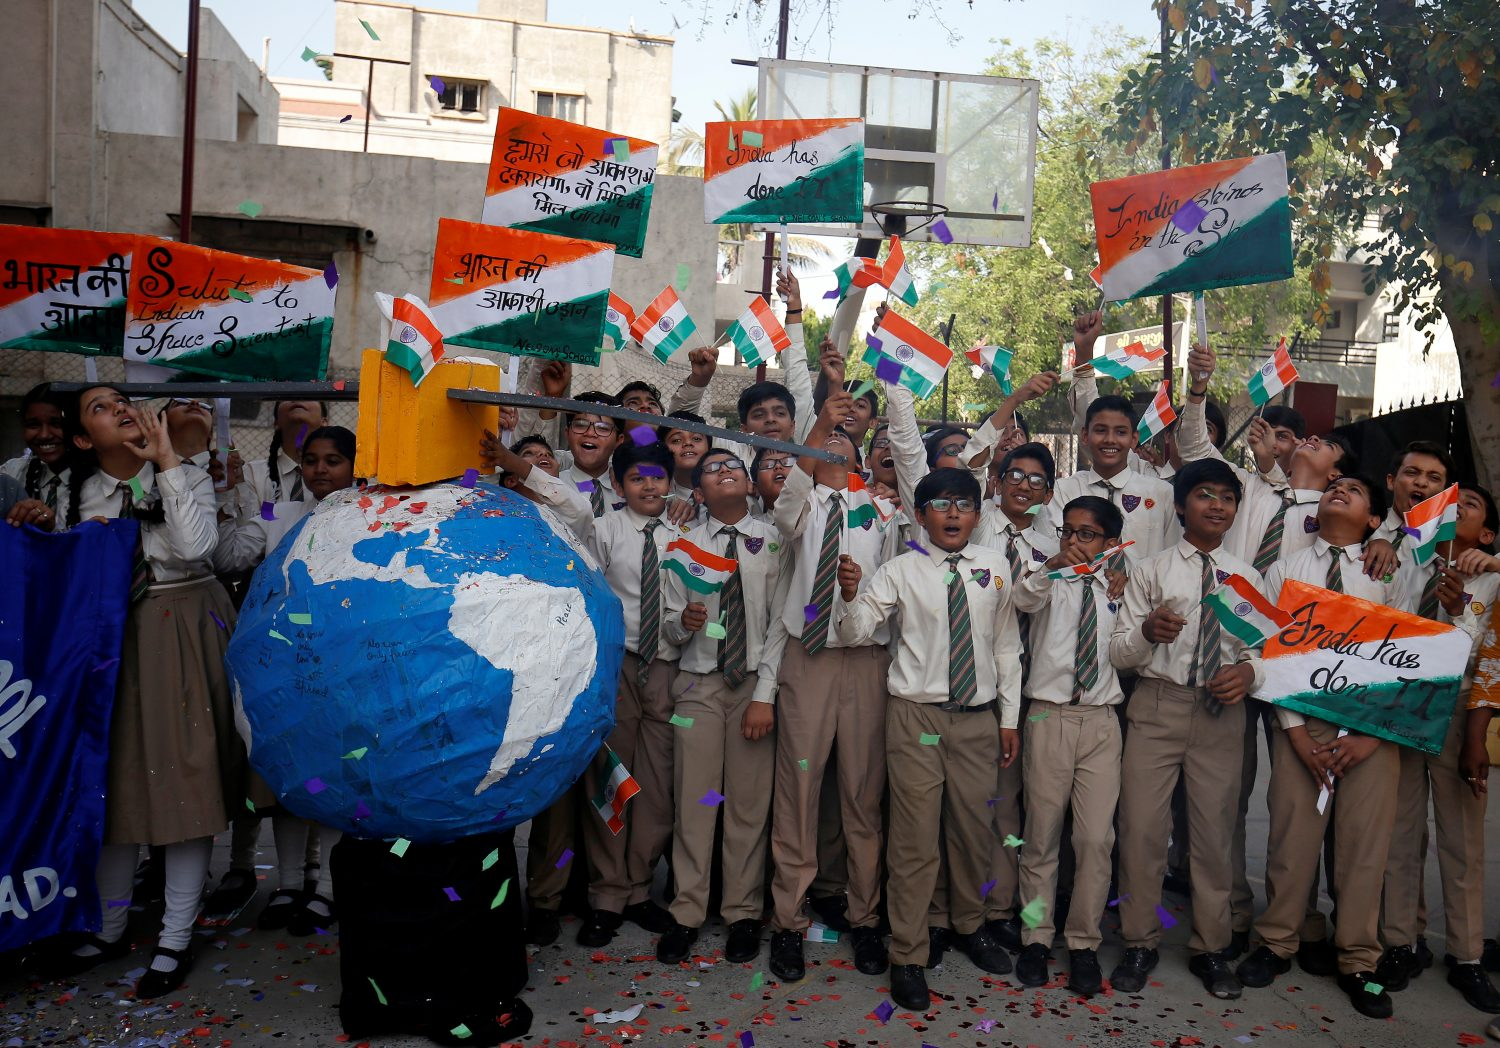 Students cheer as they raise flags to celebrate after India shot down one of its satellites in space with an anti-satellite missile in a test, inside their school premises in Ahmedabad, India, March 27, 2019. REUTERS/Amit Dave